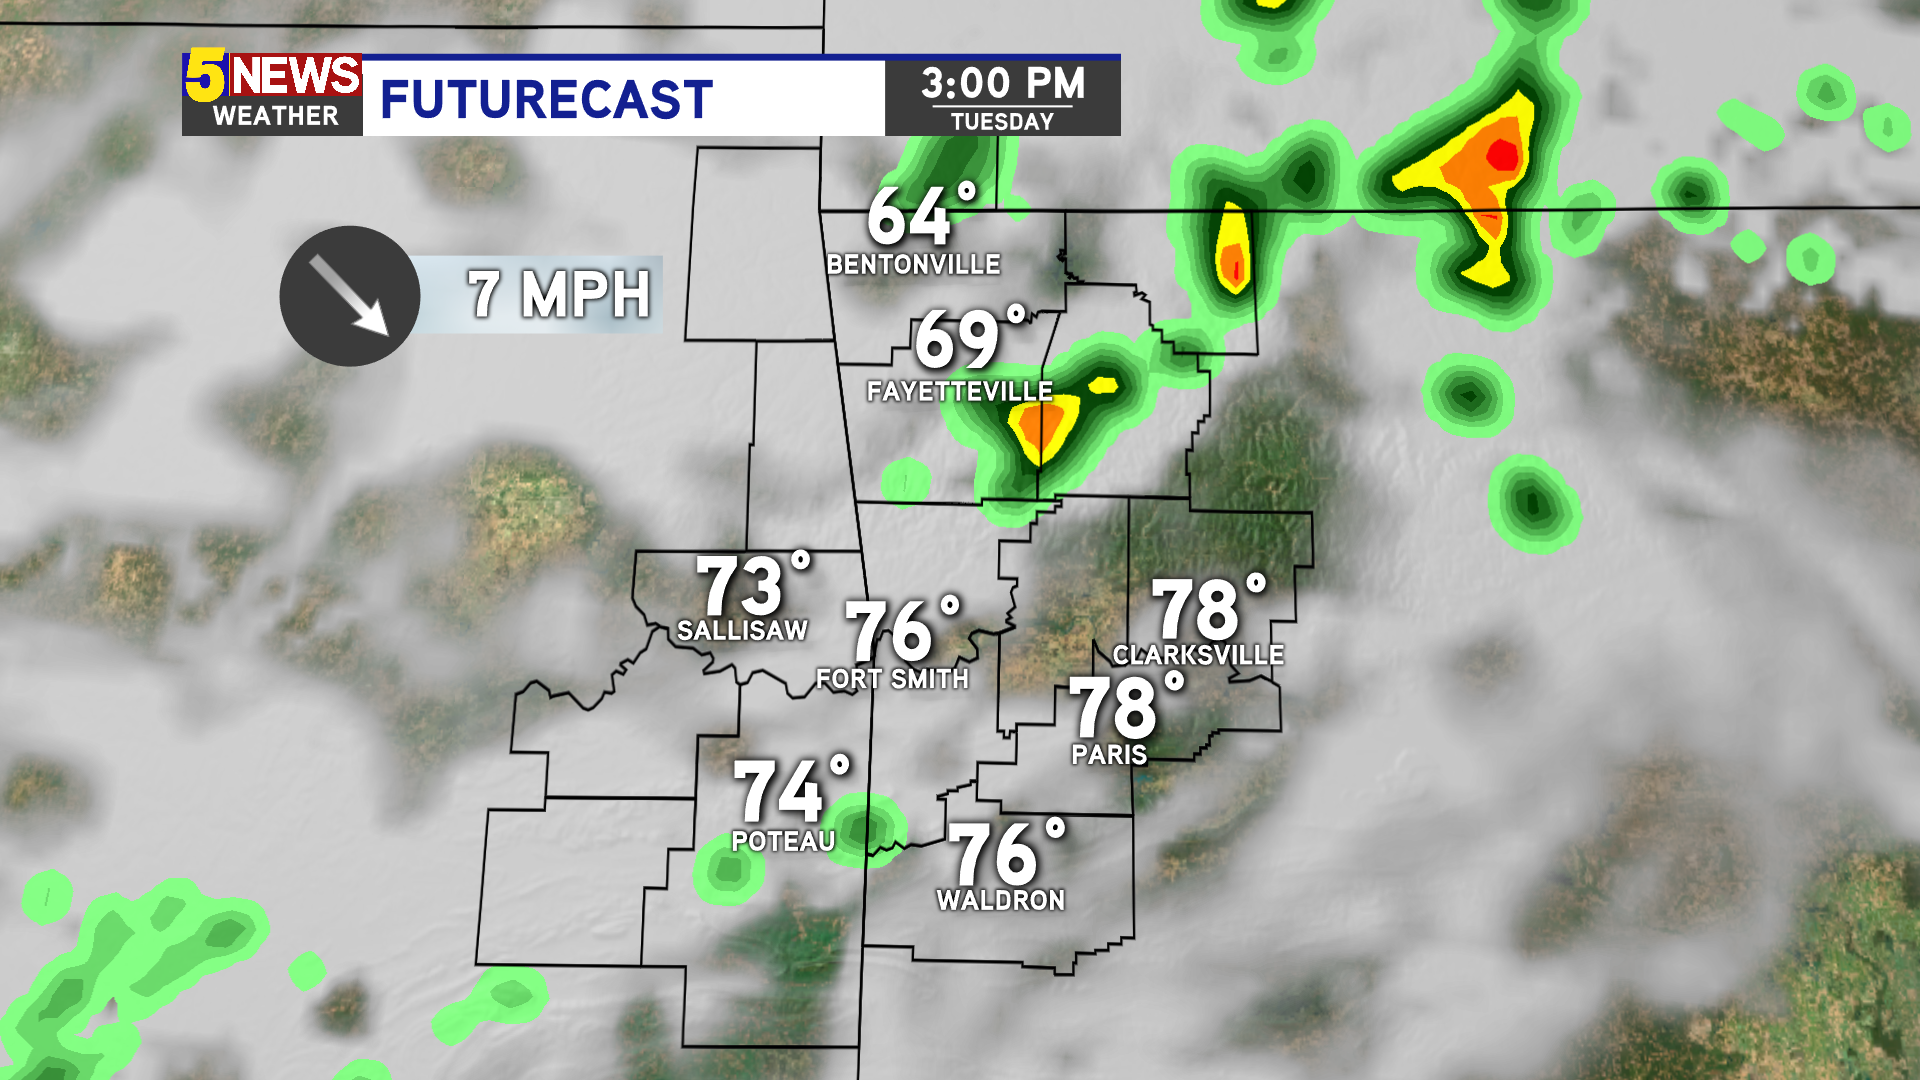 Few showers Thursday, isolated strong storms Friday